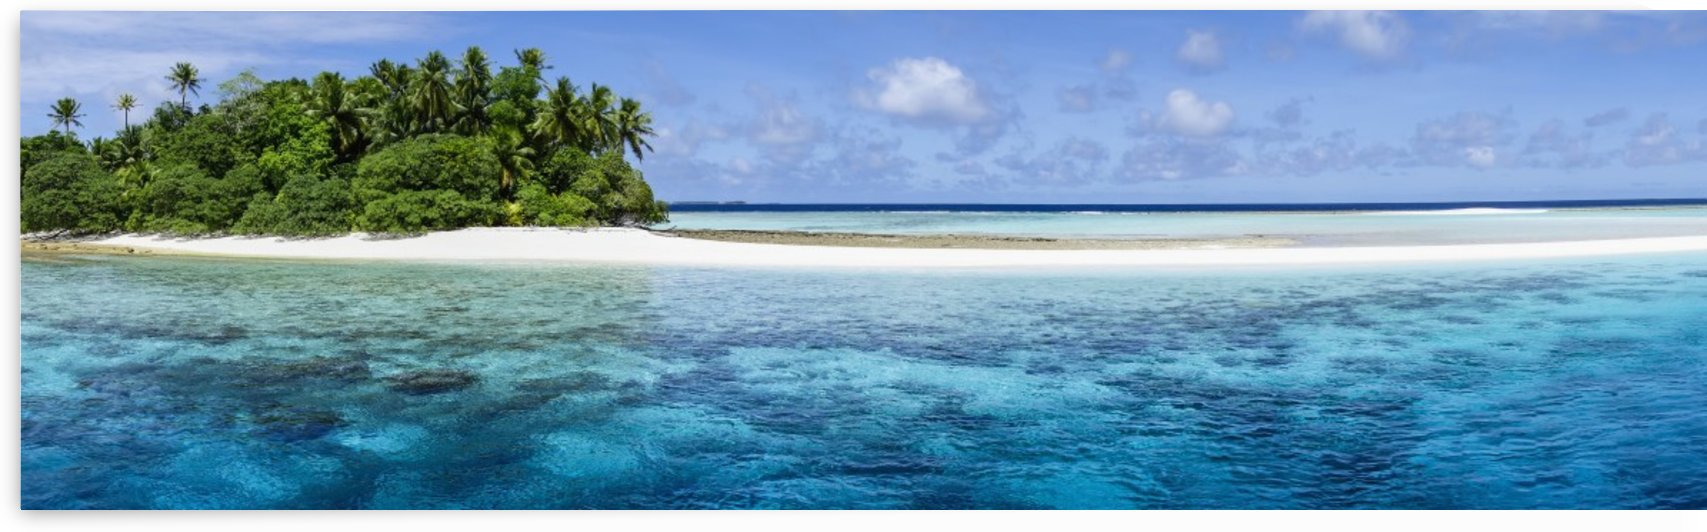 A remote atoll of the Marshall Islands; Republic of the Marshall Islands by PacificStock